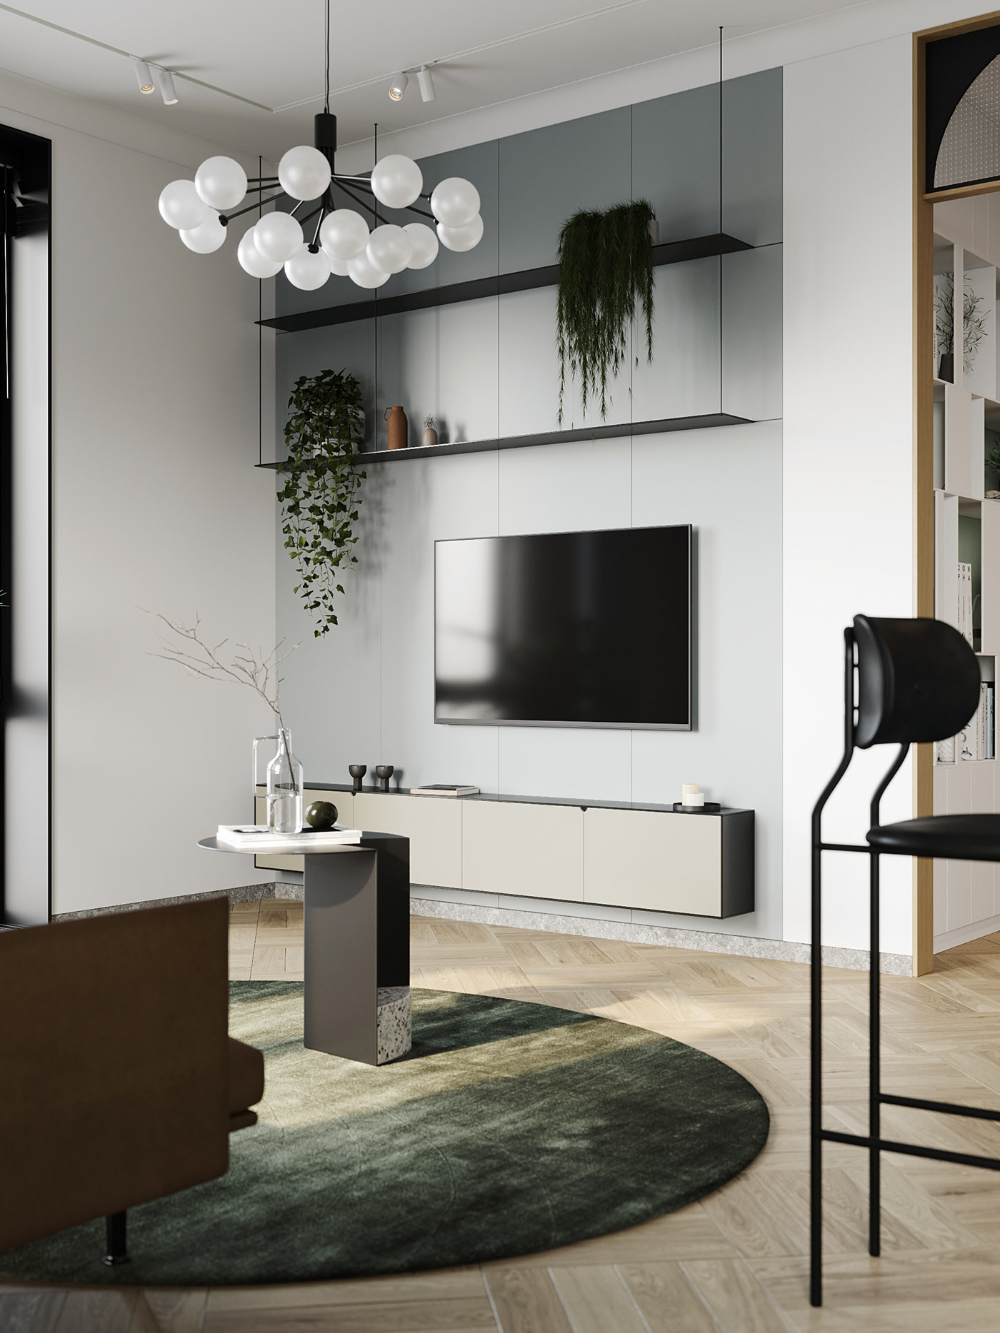 Autodesk Room Design: Small Apartment Layout, Home